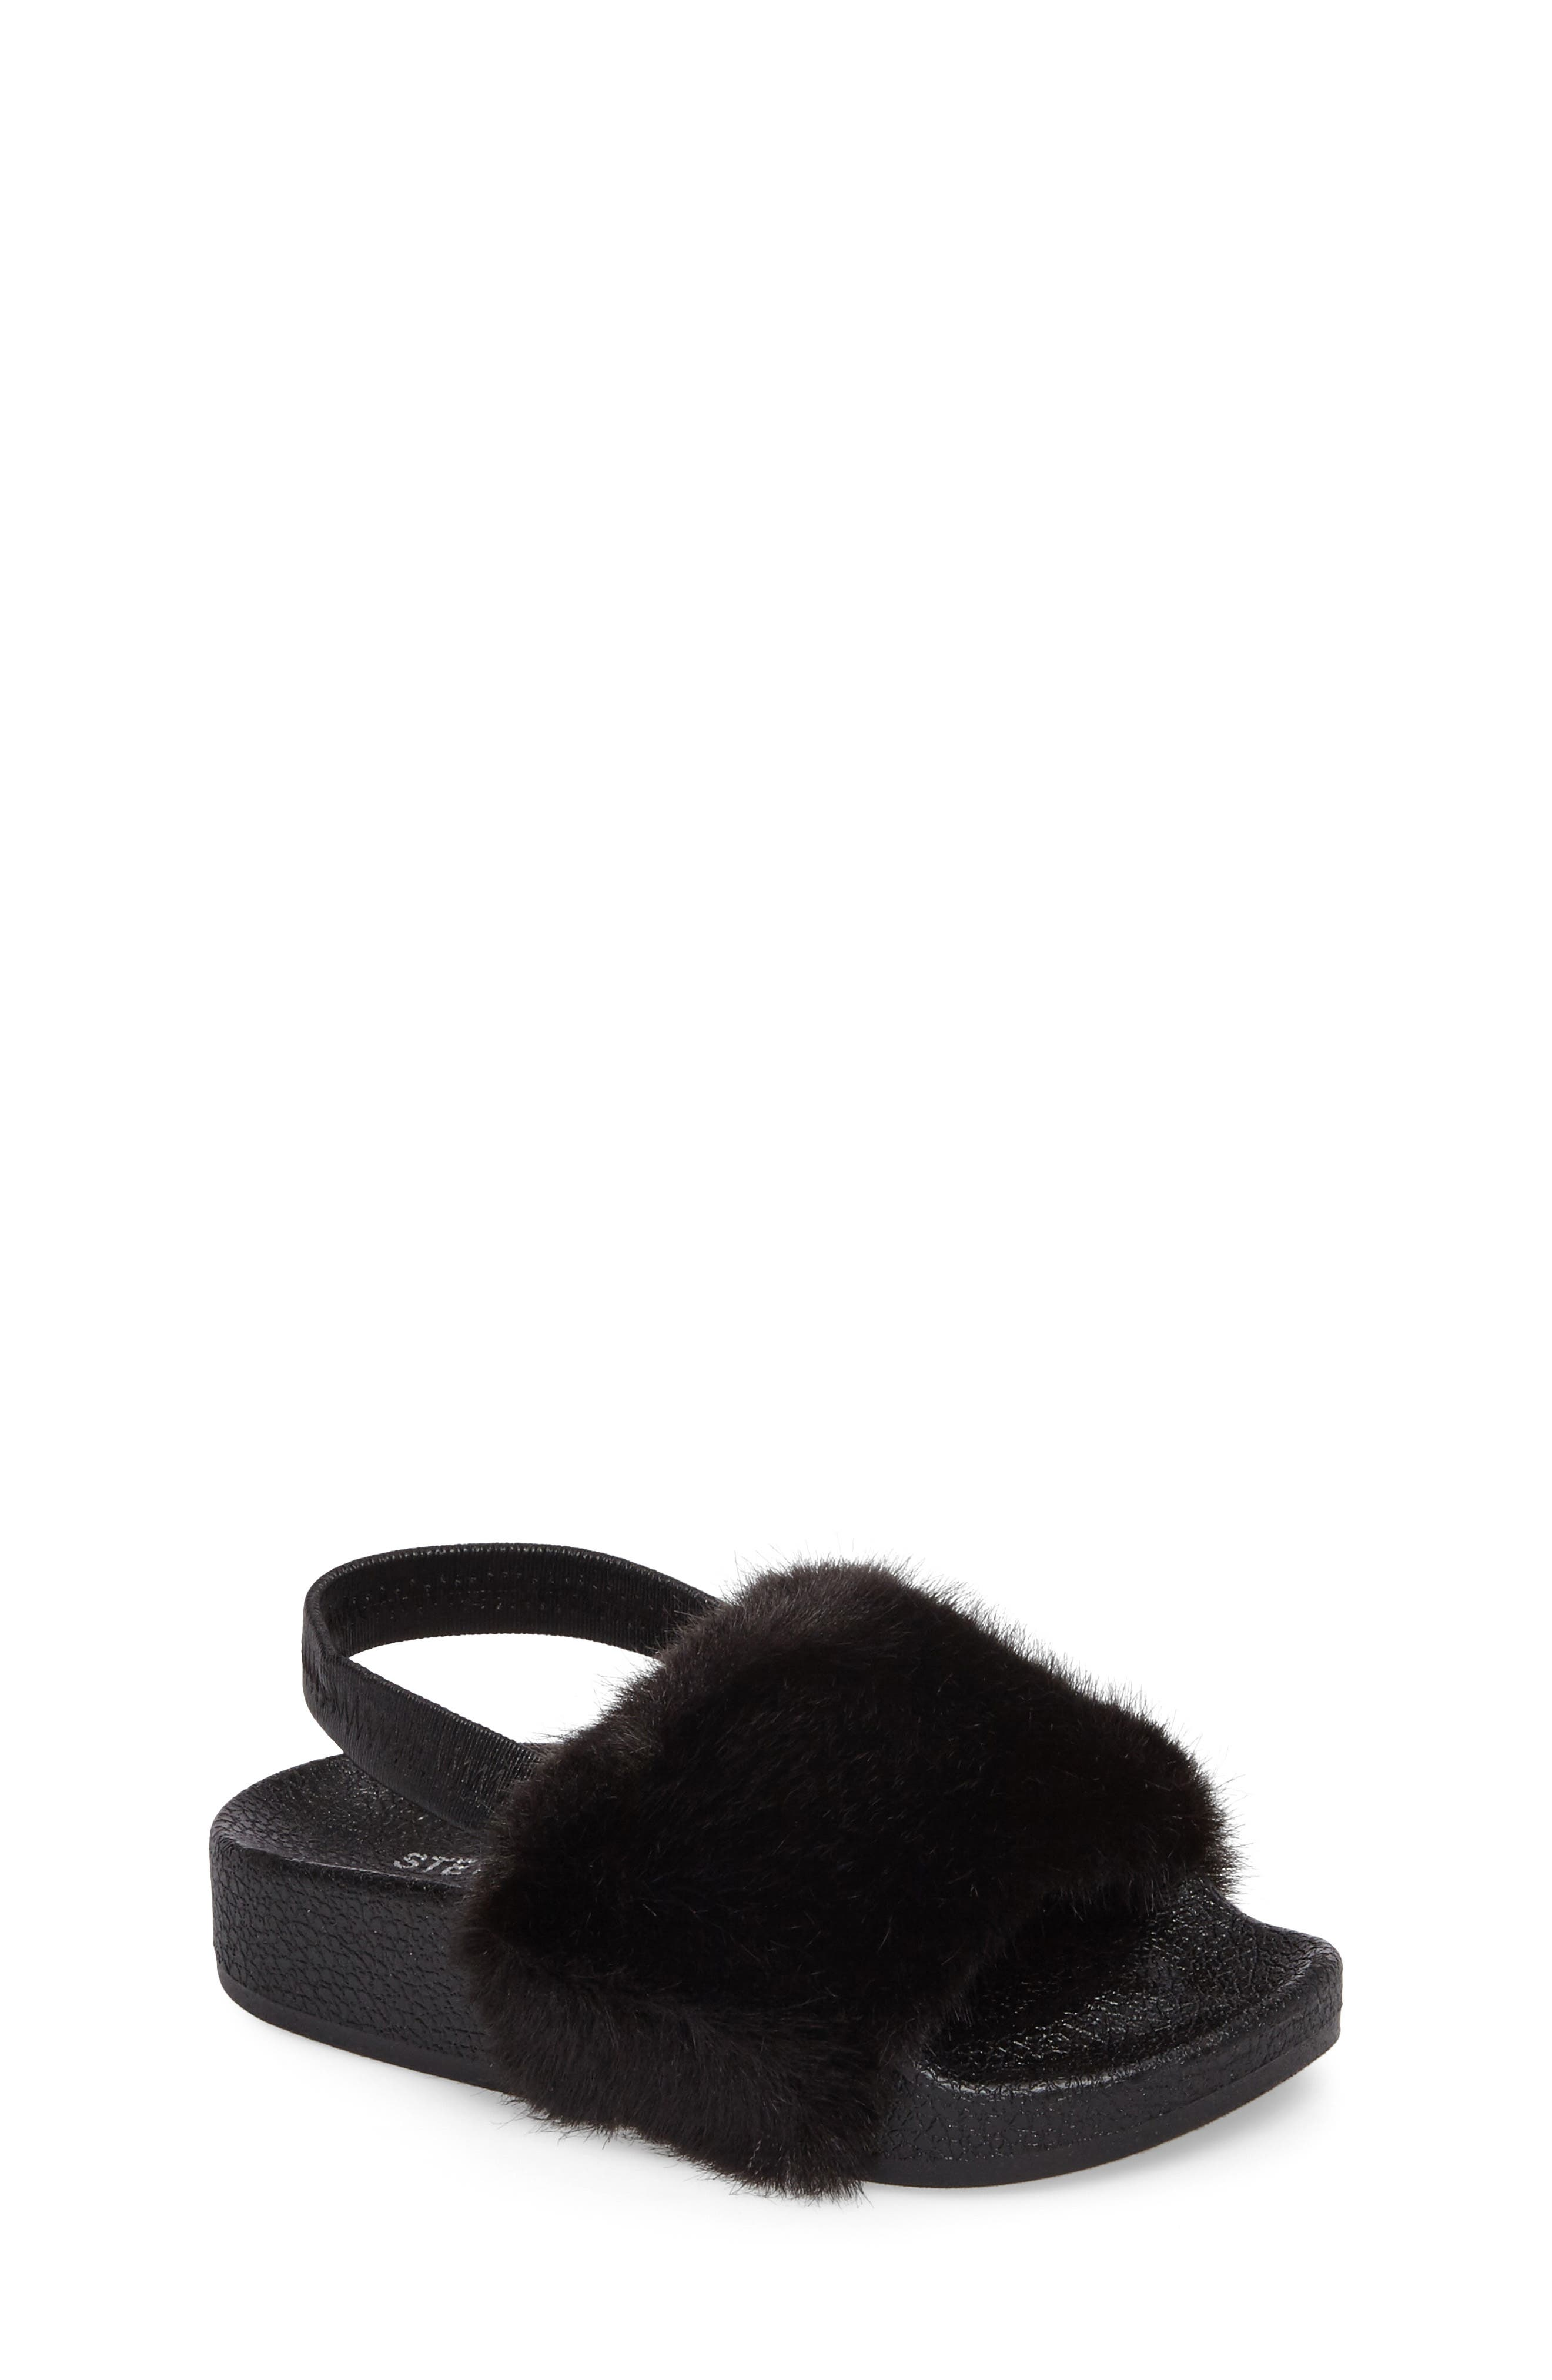 Alternate Image 1 Selected - Steve Madden Tsoftey Faux Fur Slide Sandal (Toddler)